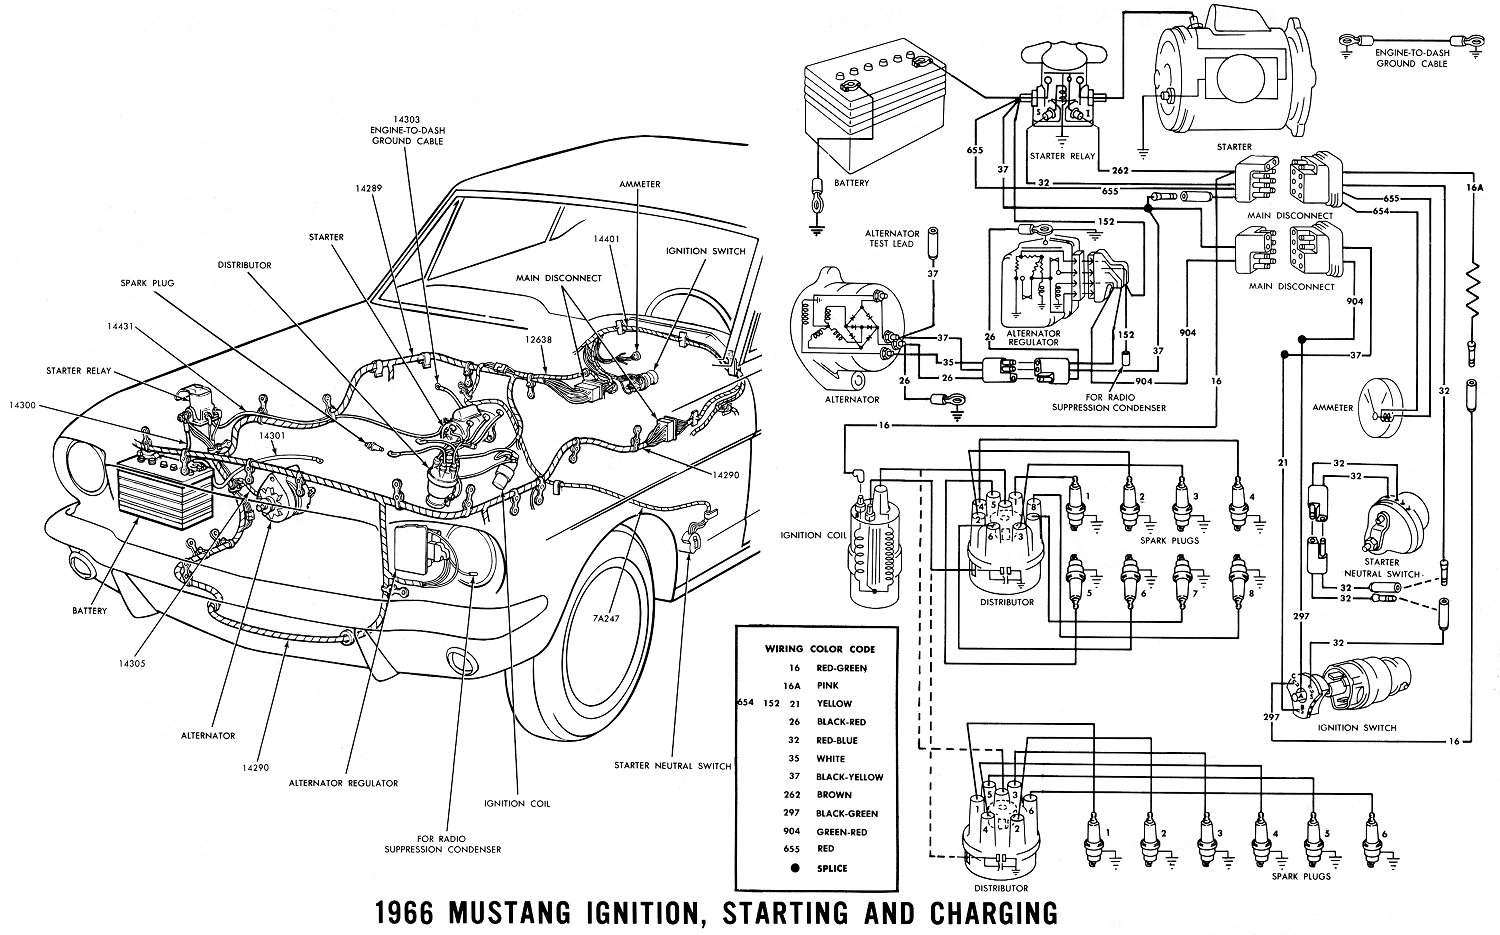 ford ranger wiring schematic wiring diagrams and schematics 2003 ford ranger a c not working pressor clutch ford ranger transmission system wire diagrams